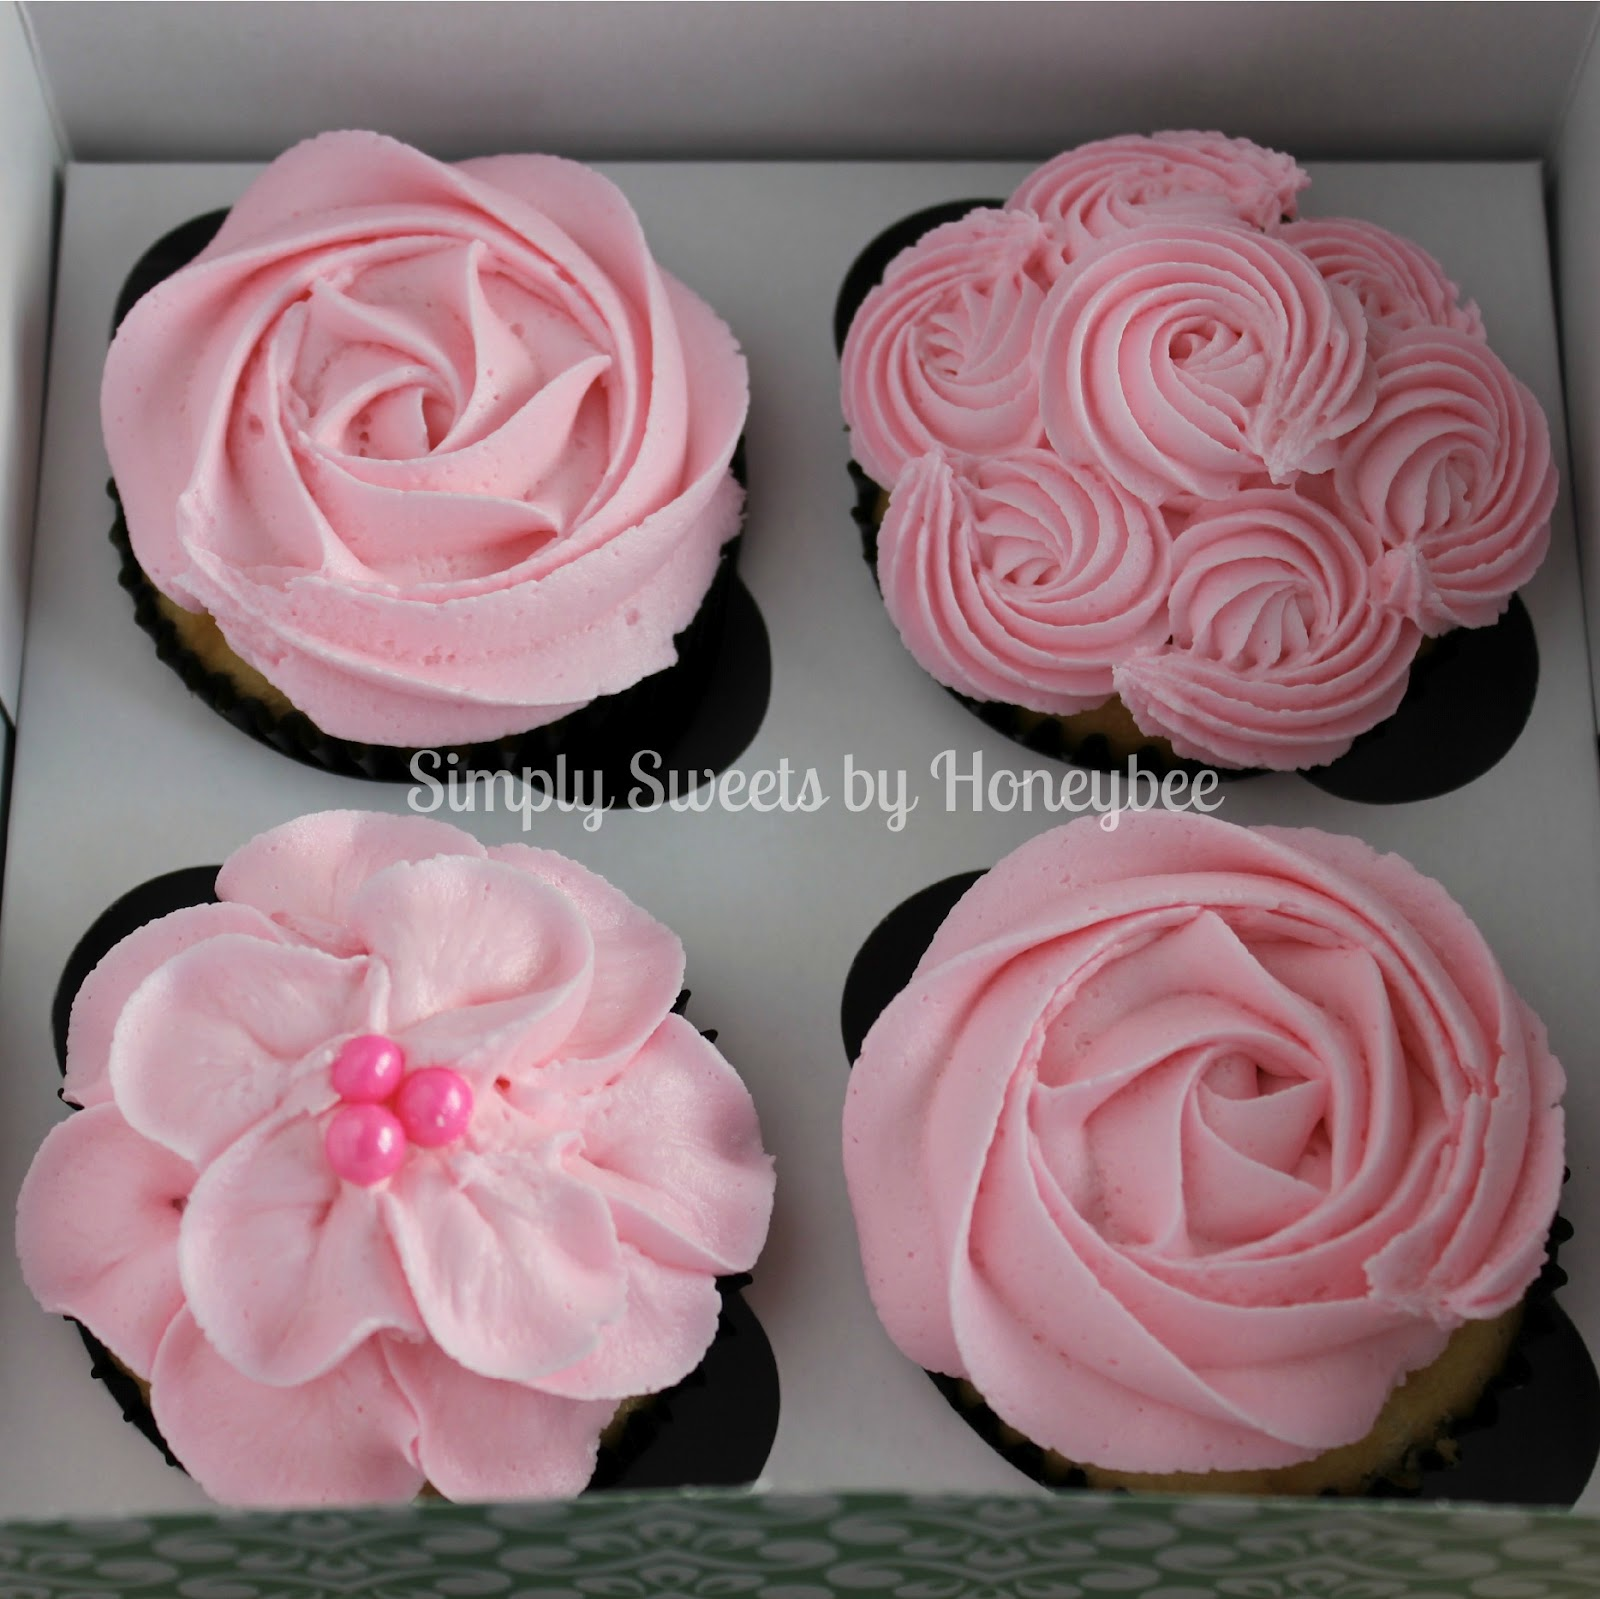 Decorating Cupcakes mother's day cupcakes {video tutorial} - simplysweetsbyhoneybee